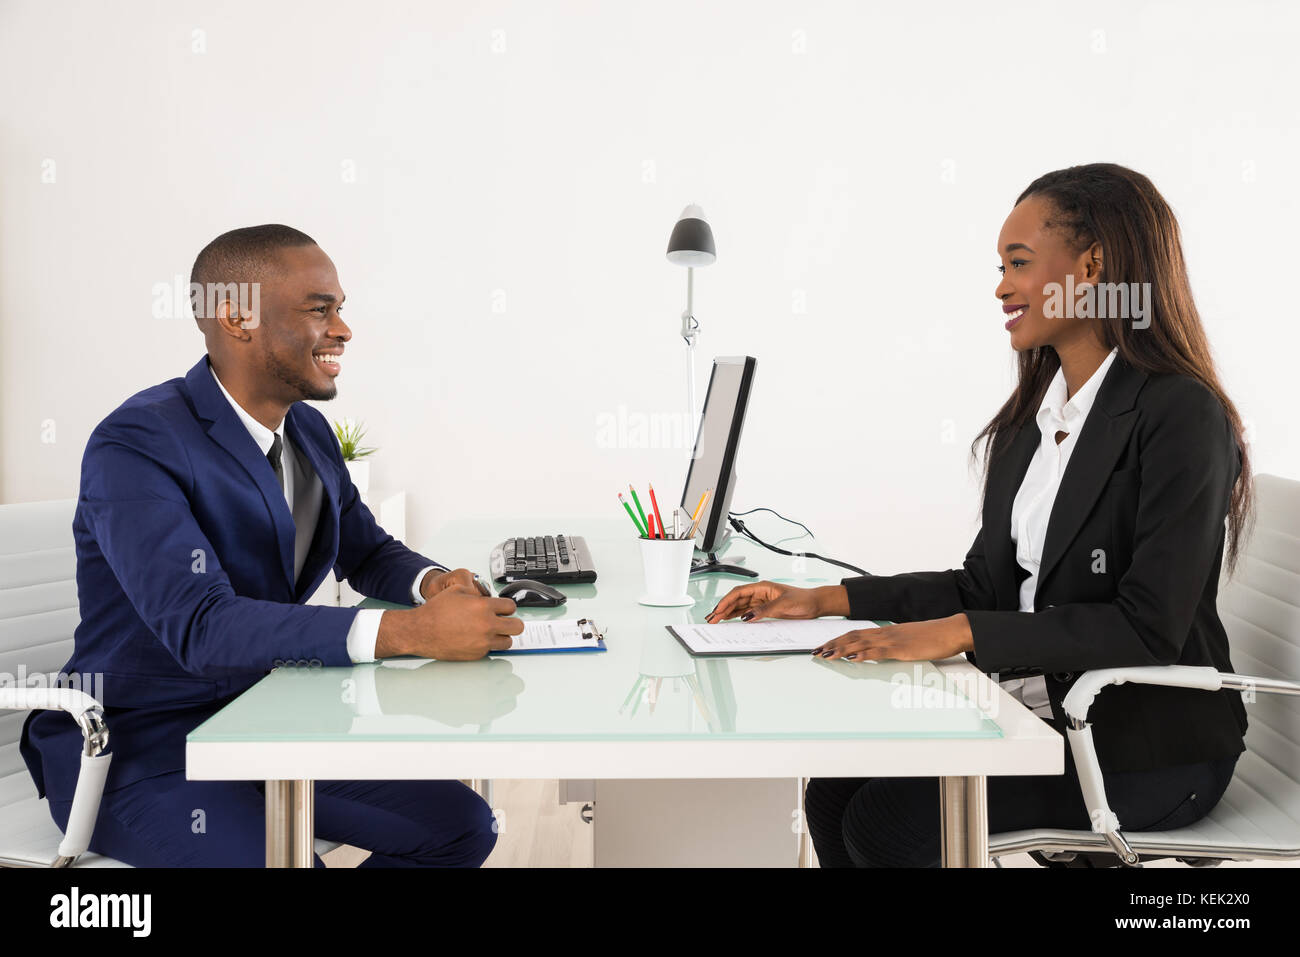 Male Manager Interviewing A Young Female Applicant In Office - Stock Image